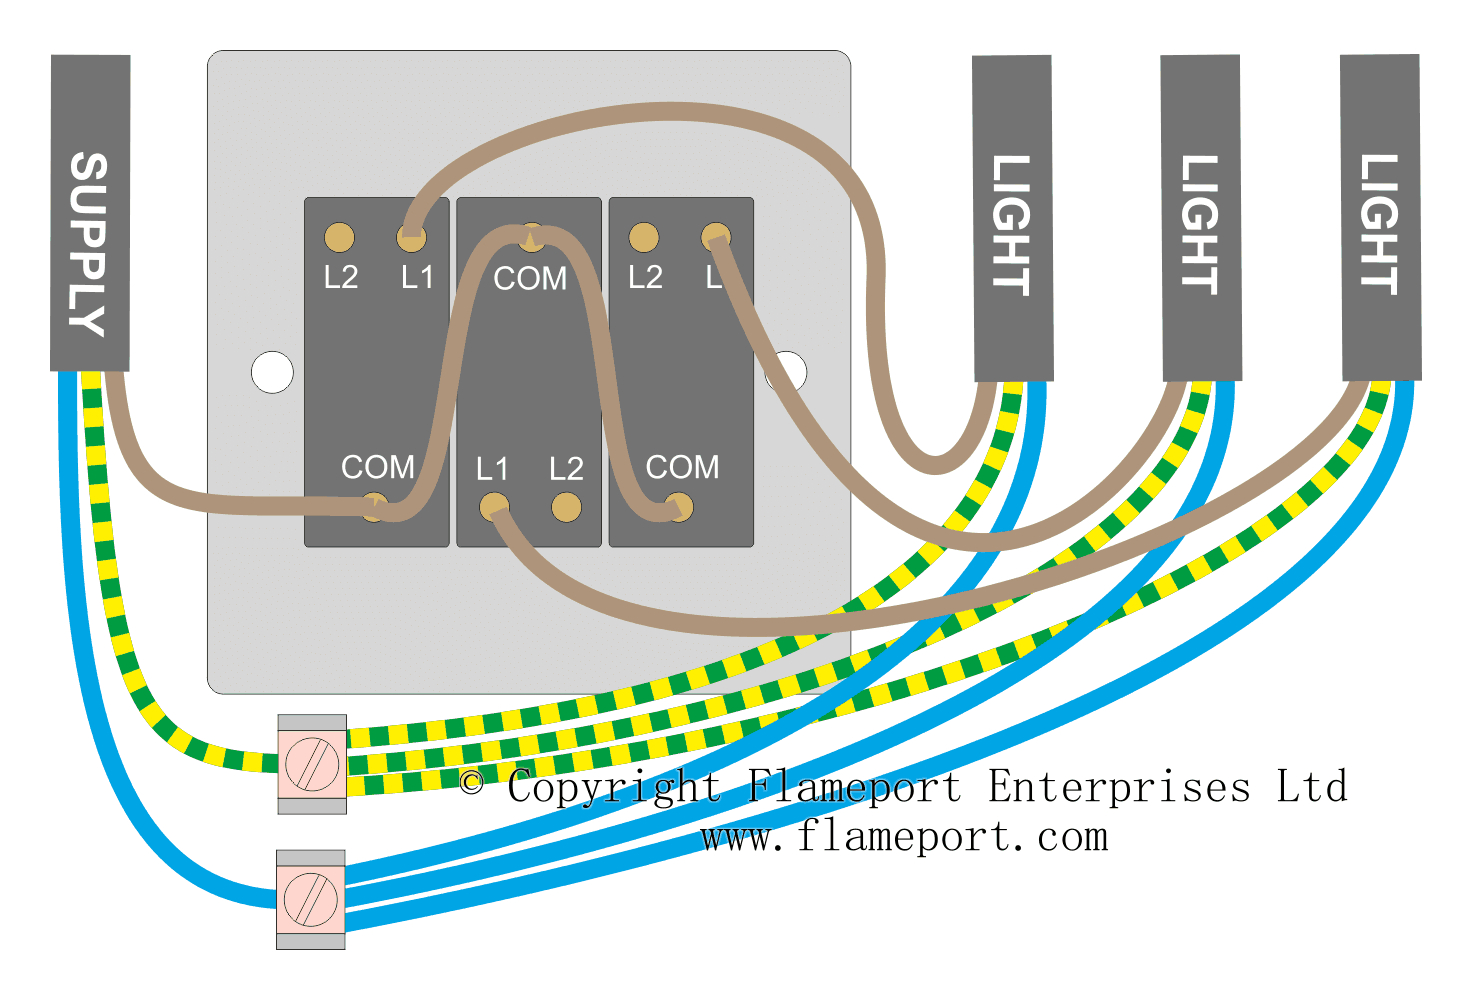 Wiring For A Single Loft Or Garage Light - 3 Way Light Switch Wiring Diagram Multiple Lights